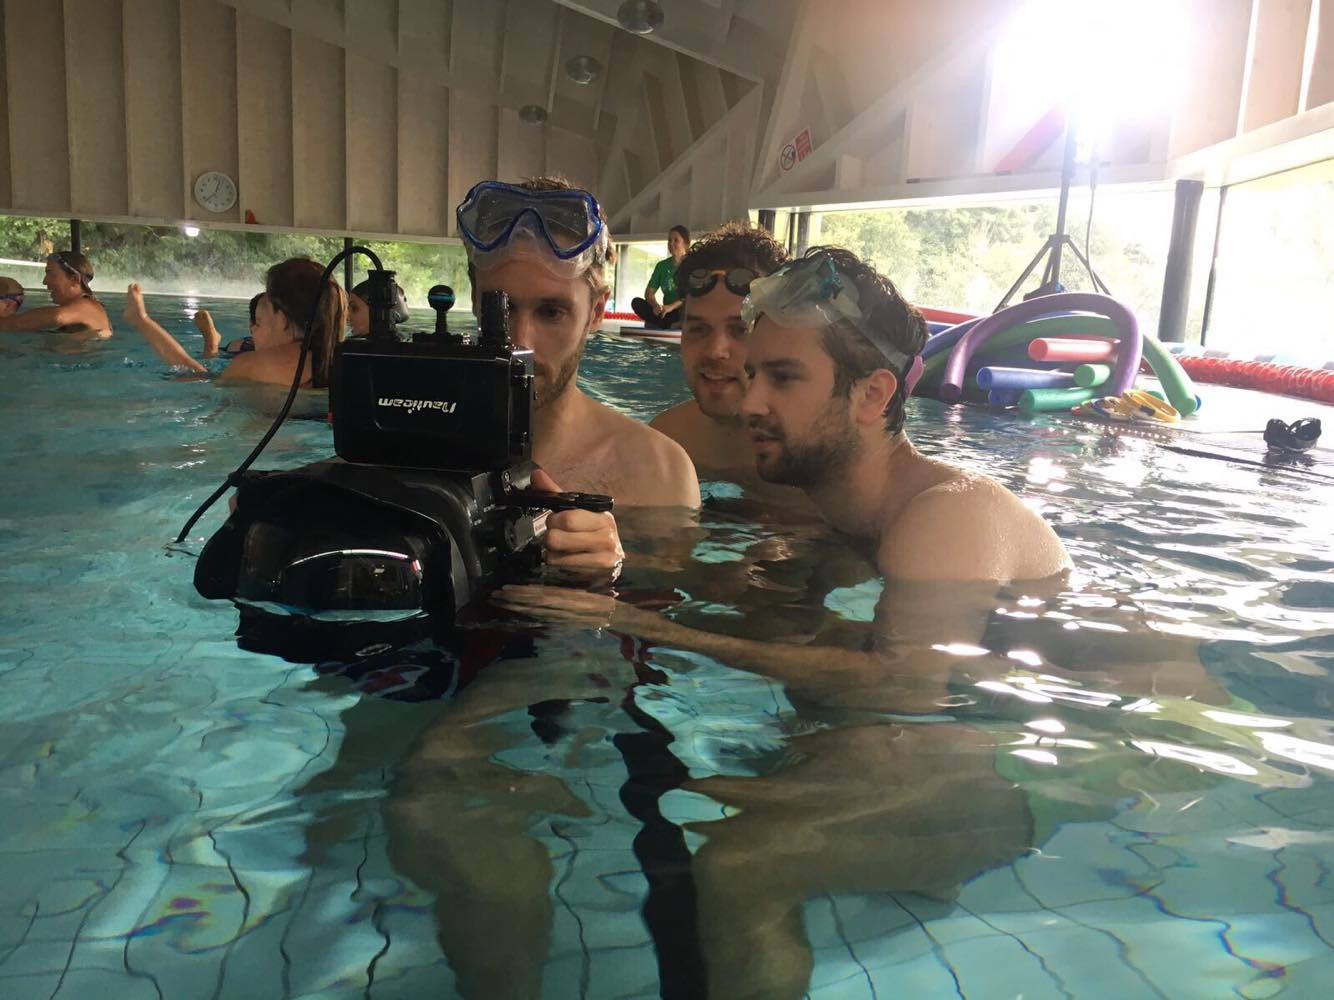 Filming in the pool with Sony FS7